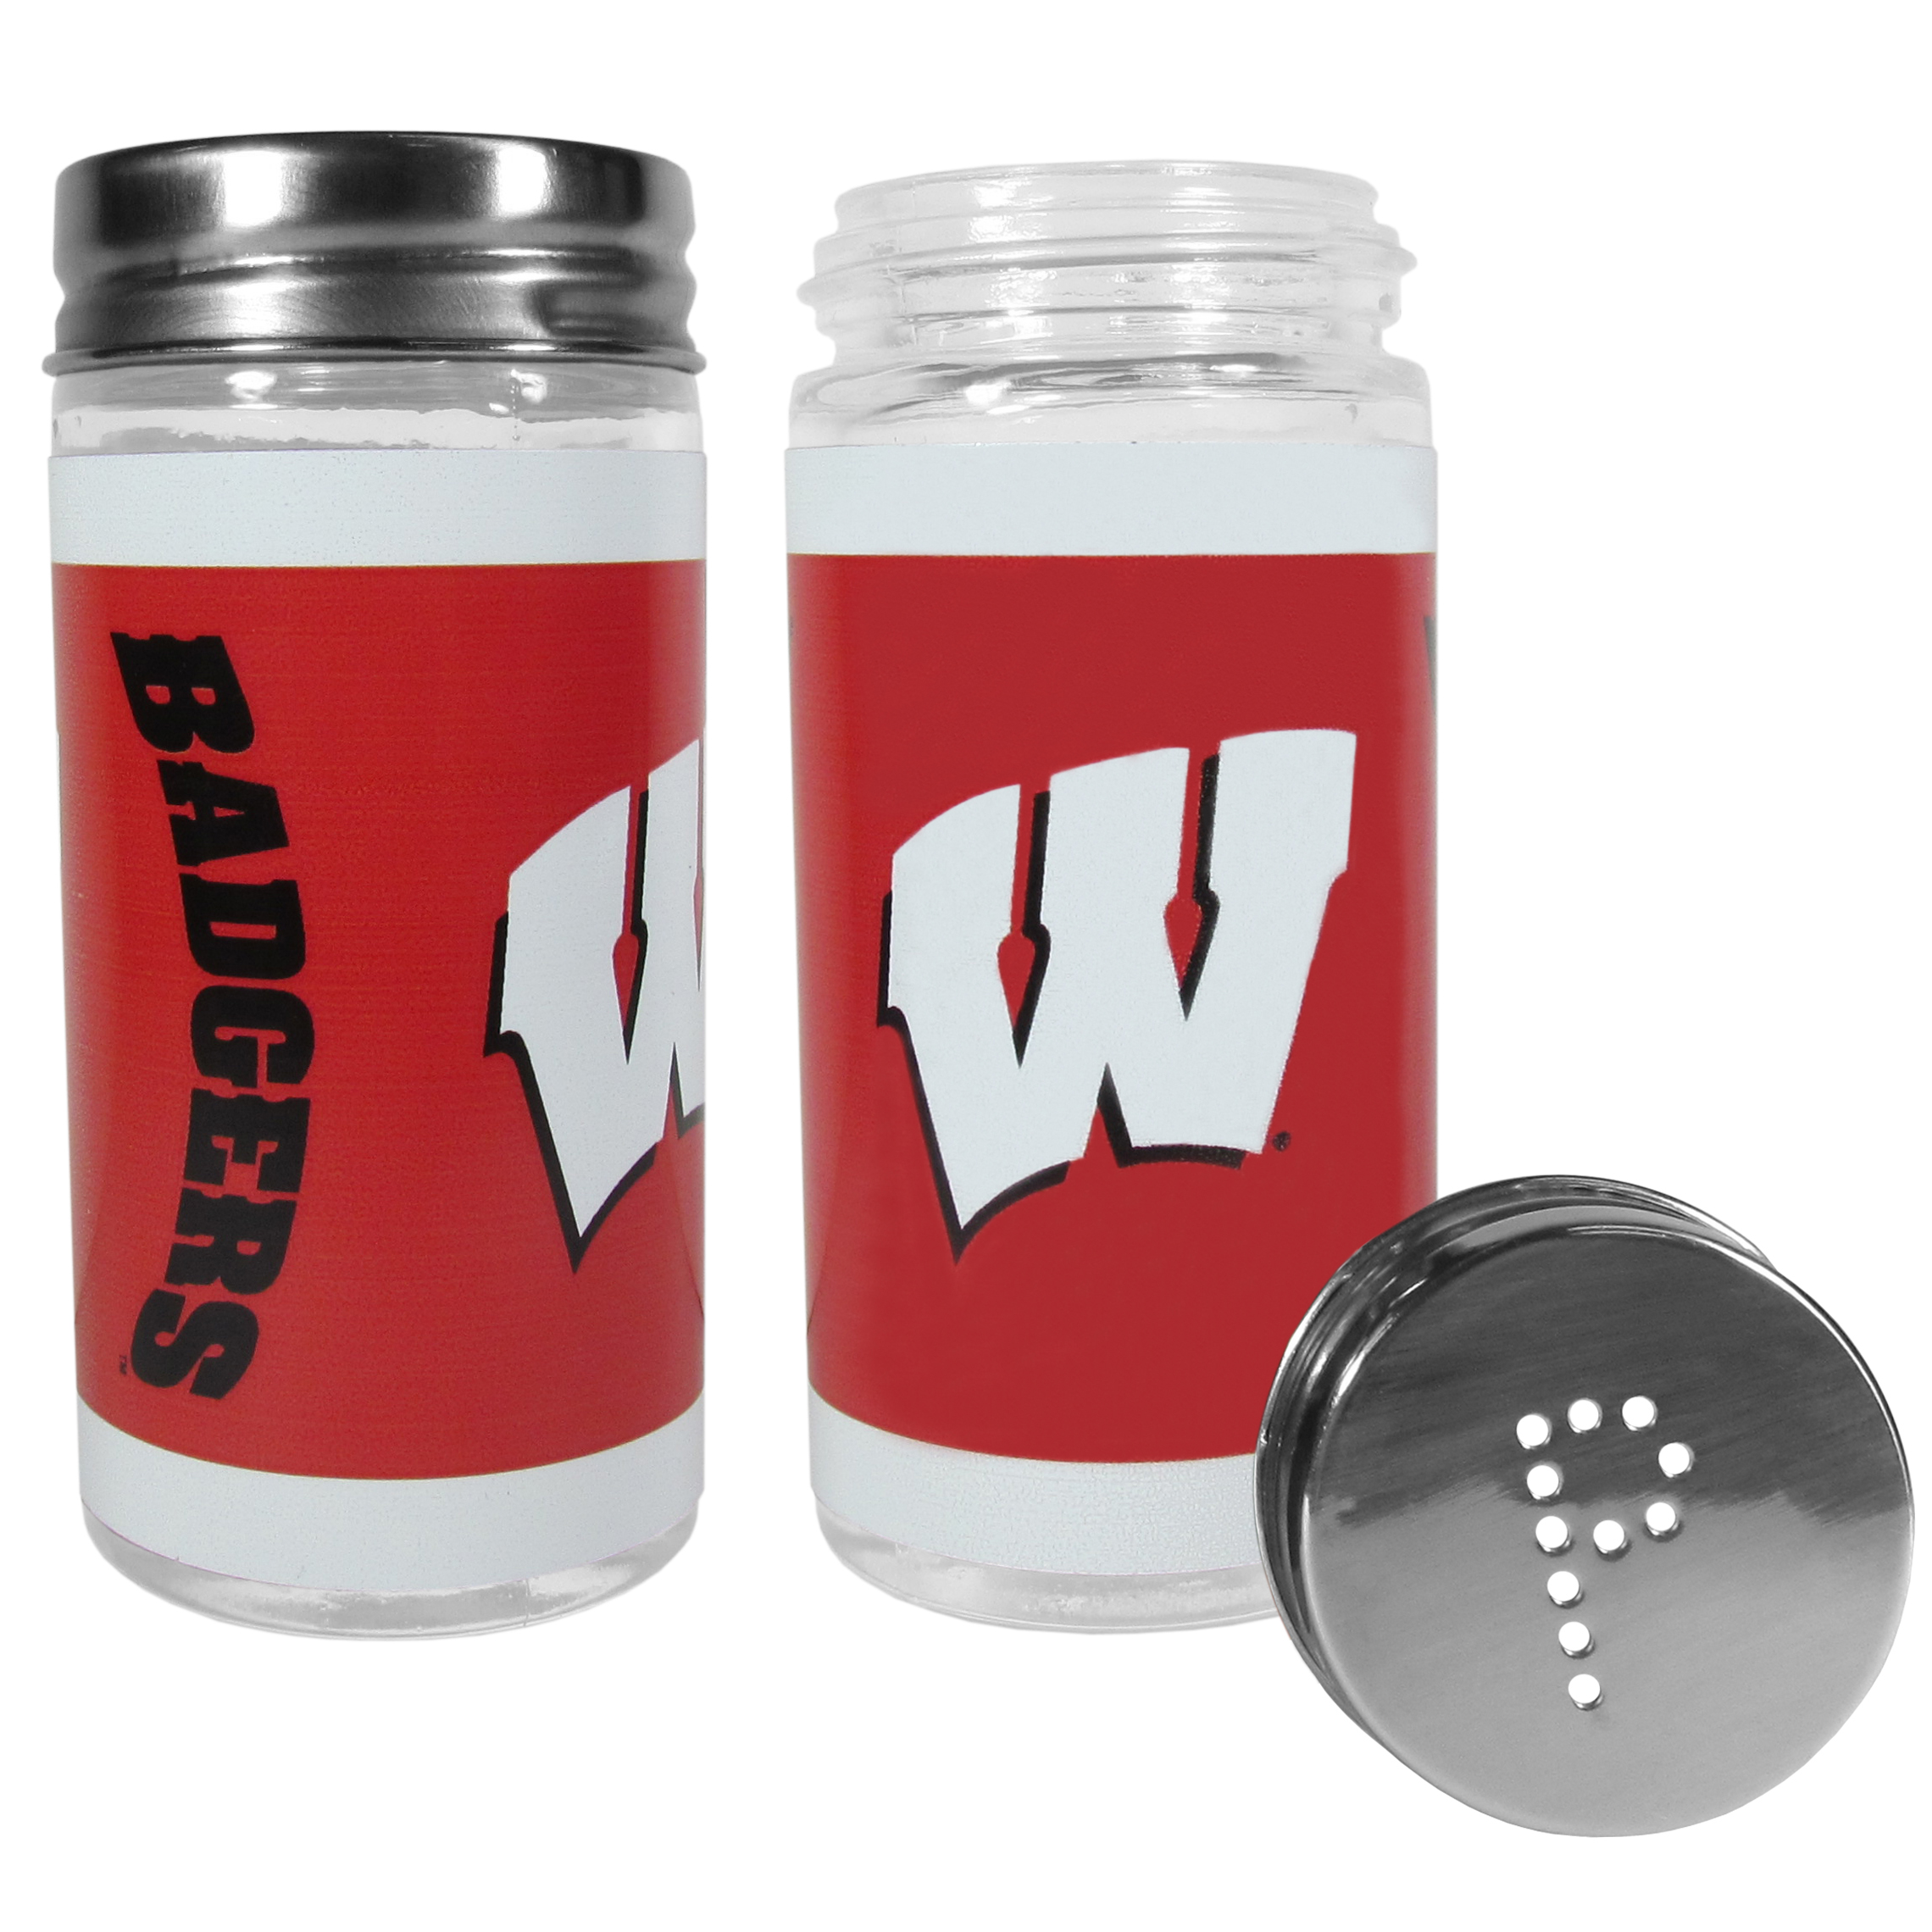 Wisconsin Badgers Tailgater Salt & Pepper Shakers - No tailgate party is complete without your Wisconsin Badgers salt & pepper shakers featuring bright team graphics. The glass shakers are 3.75 inches tall and the screw top lids have holes that spell out P and S. These team shakers are a great grill accessory whether you are barbecuing on the patio, picnicing or having a game day party.